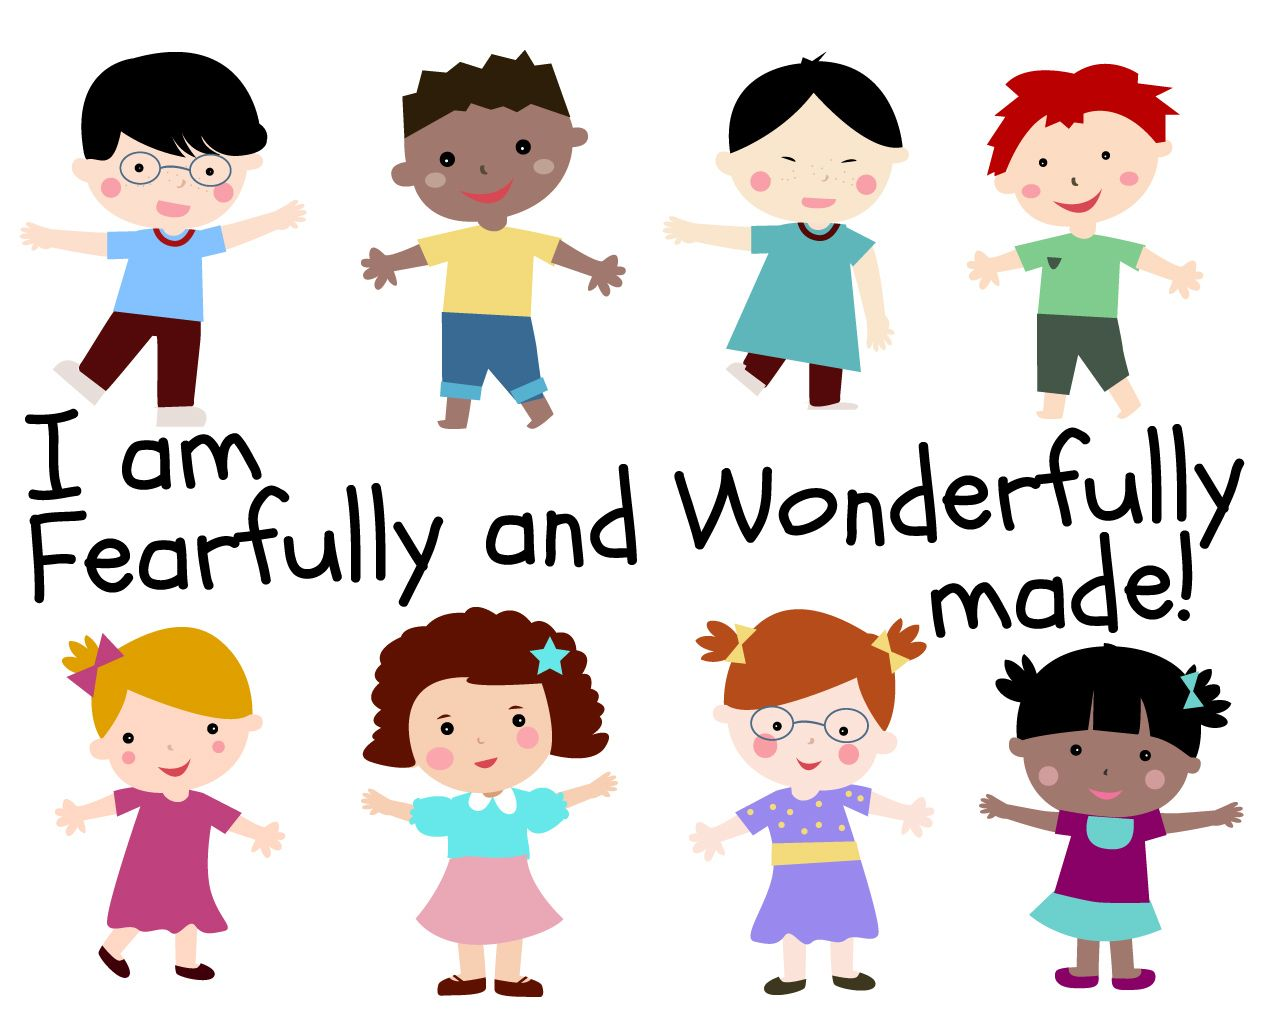 I am fearfully and wonderfully made powerpoint for children's Coloring Pages of Bible Verses Psalms 150 6 I AM Fearfully and Wonderfully Made Wall Art I AM Fearfully and Wonderfully Made by God